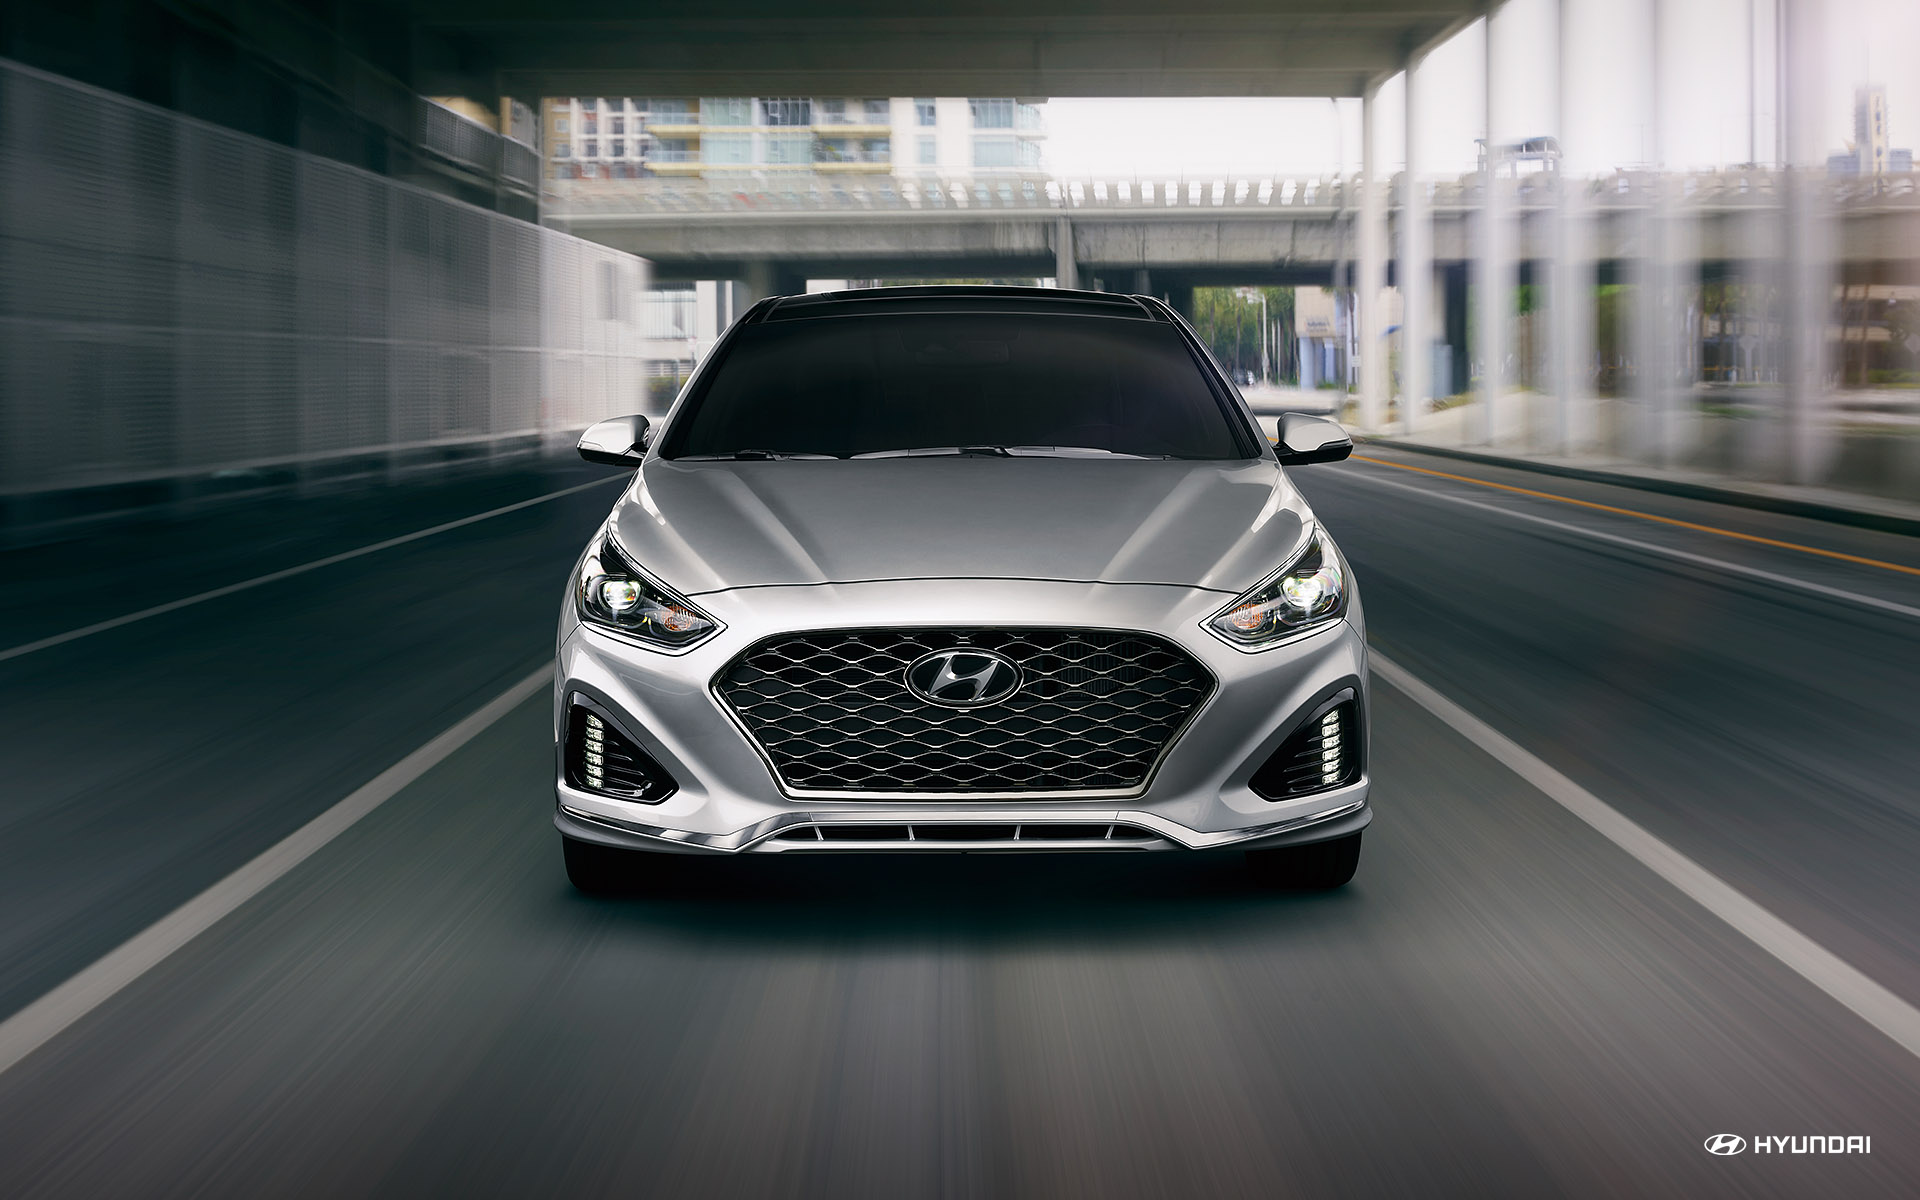 Test drive the 2019 Hyundai Sonata near Medford NY